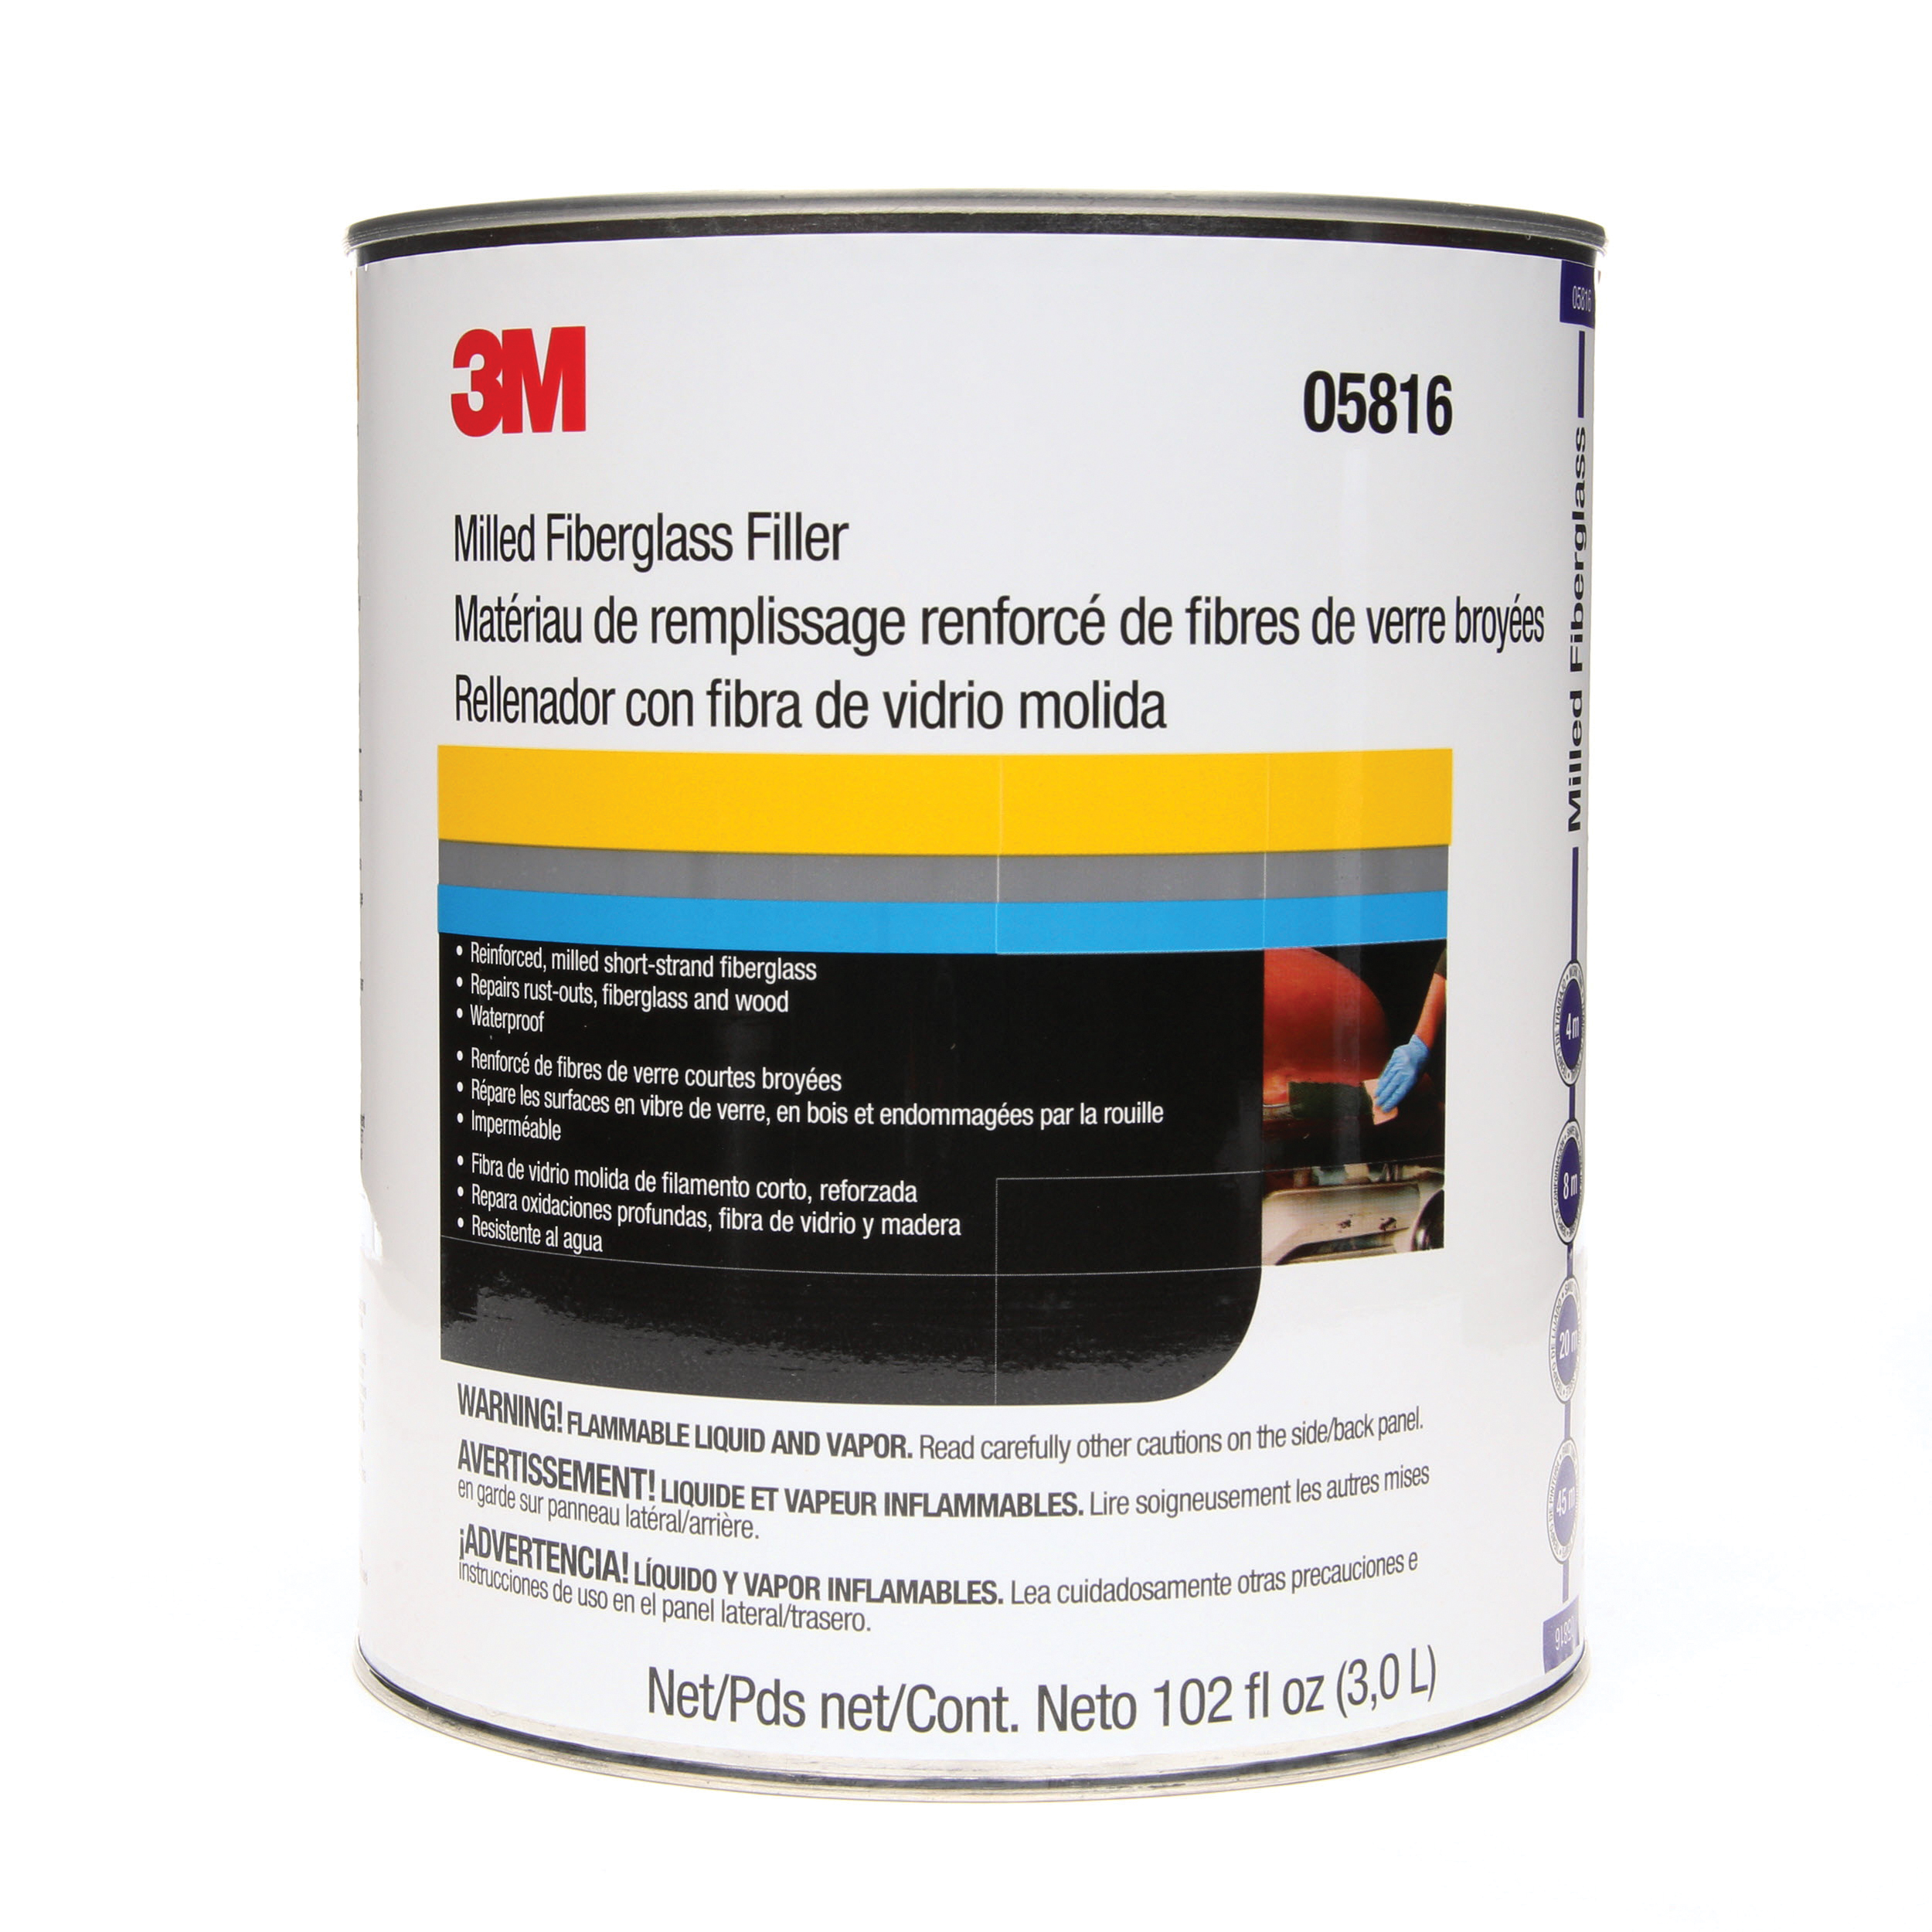 3M™ Marson® 051131-05816 Mar-Glass® 2-Component 2-Part Short Strand Fiberglass Reinforced Filler, 1 gal Container, Part A: Viscous/Part B: Paste Form, Part A: Green/Part B: Red